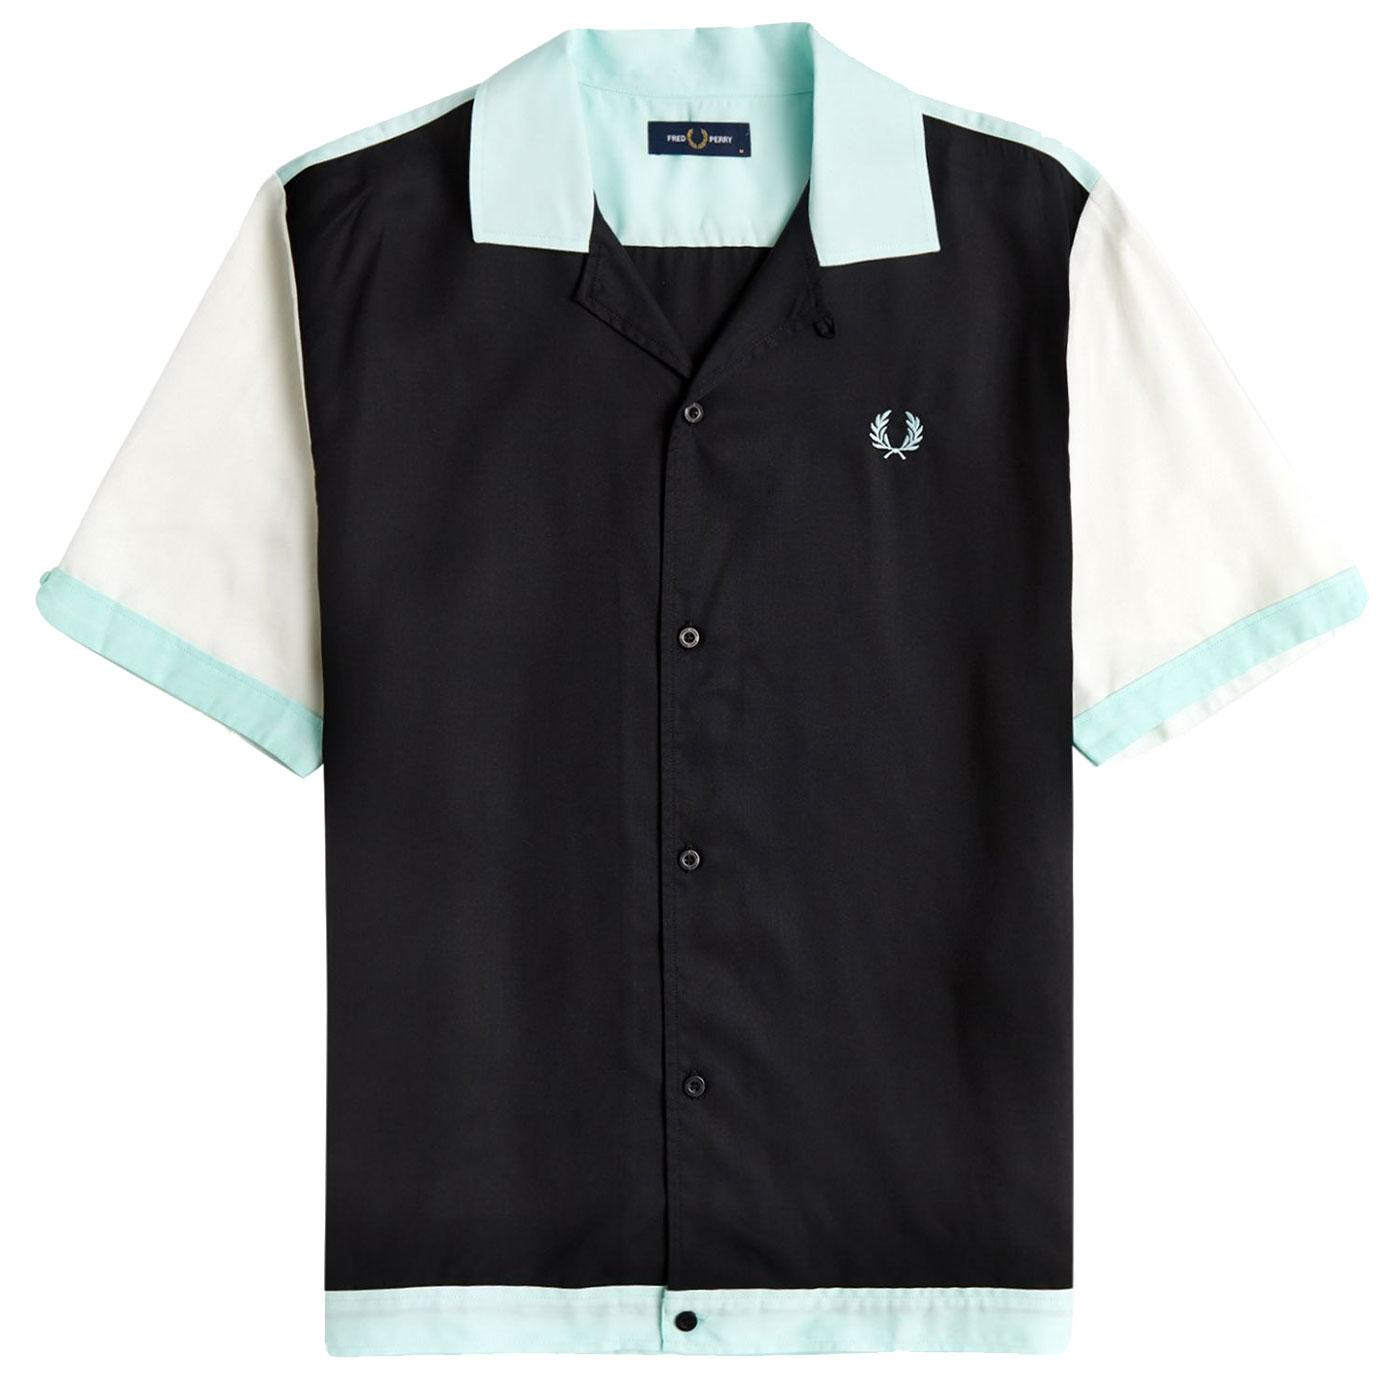 FRED PERRY Retro Mod Colour Block Bowling Shirt